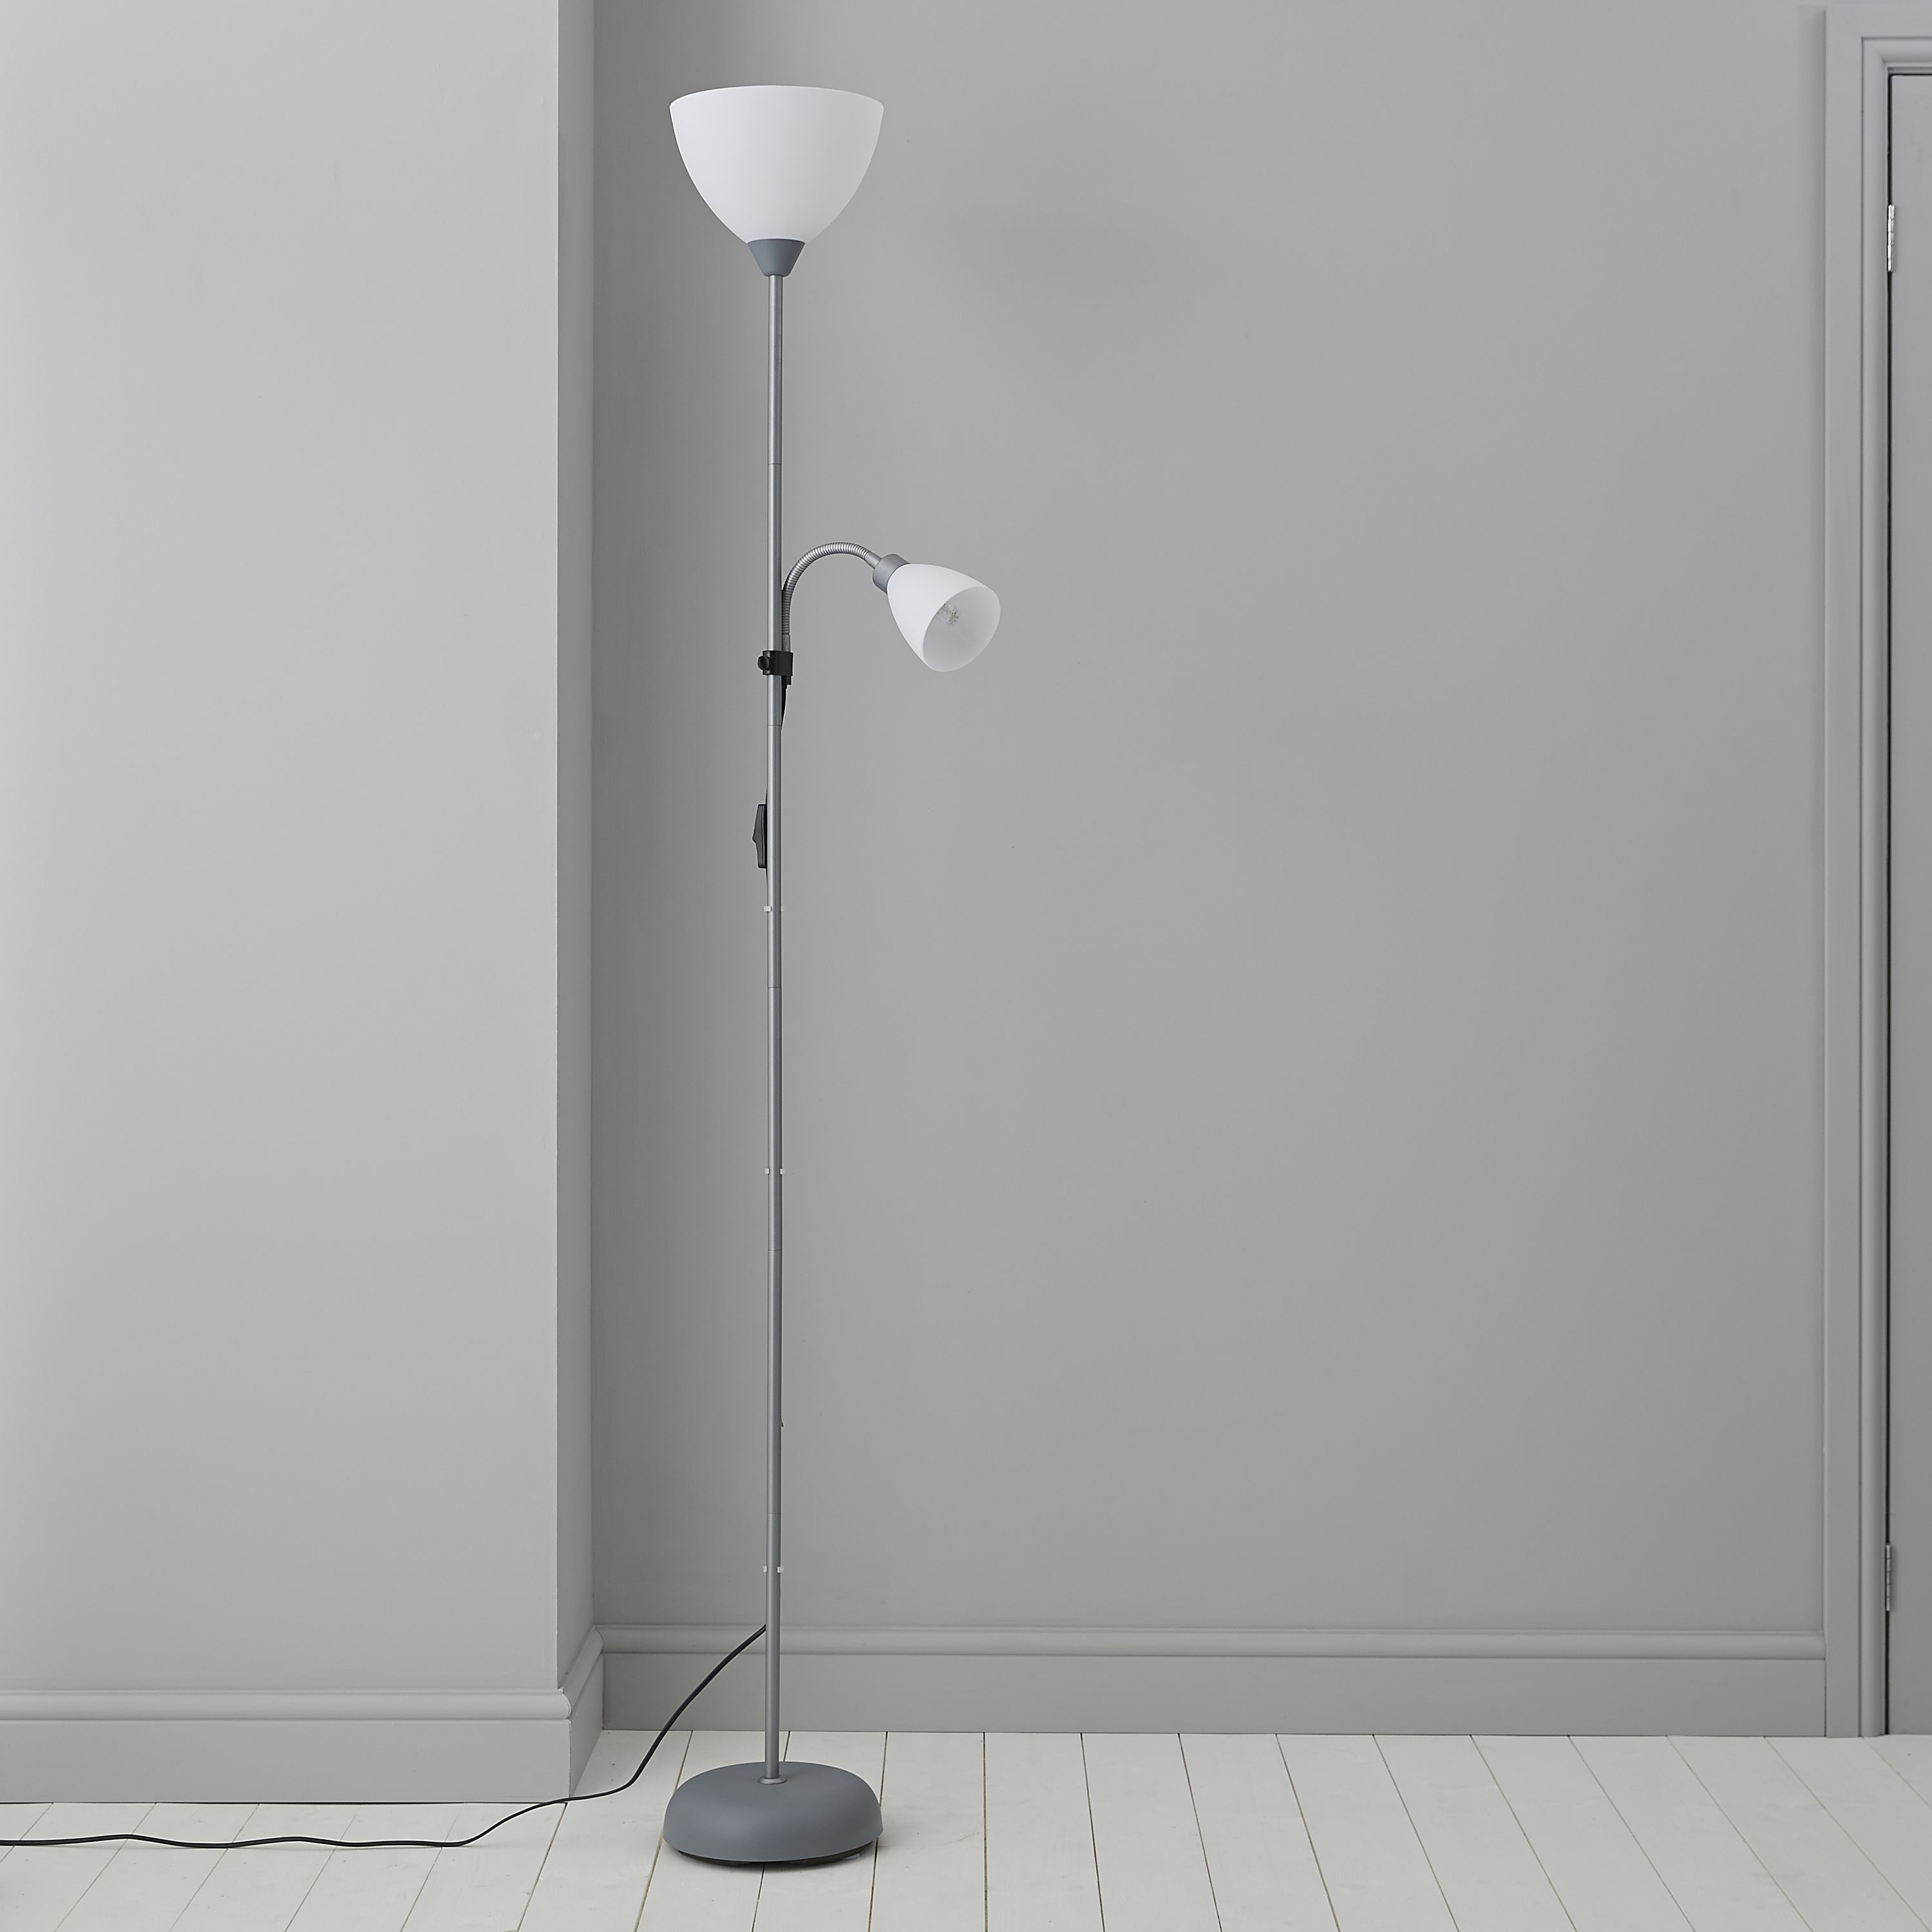 Ribbon floor lamp b and q black and brass floor lamp starkey made ribbon floor lamp b and q value white floor lamp departments diy at b q mozeypictures Image collections